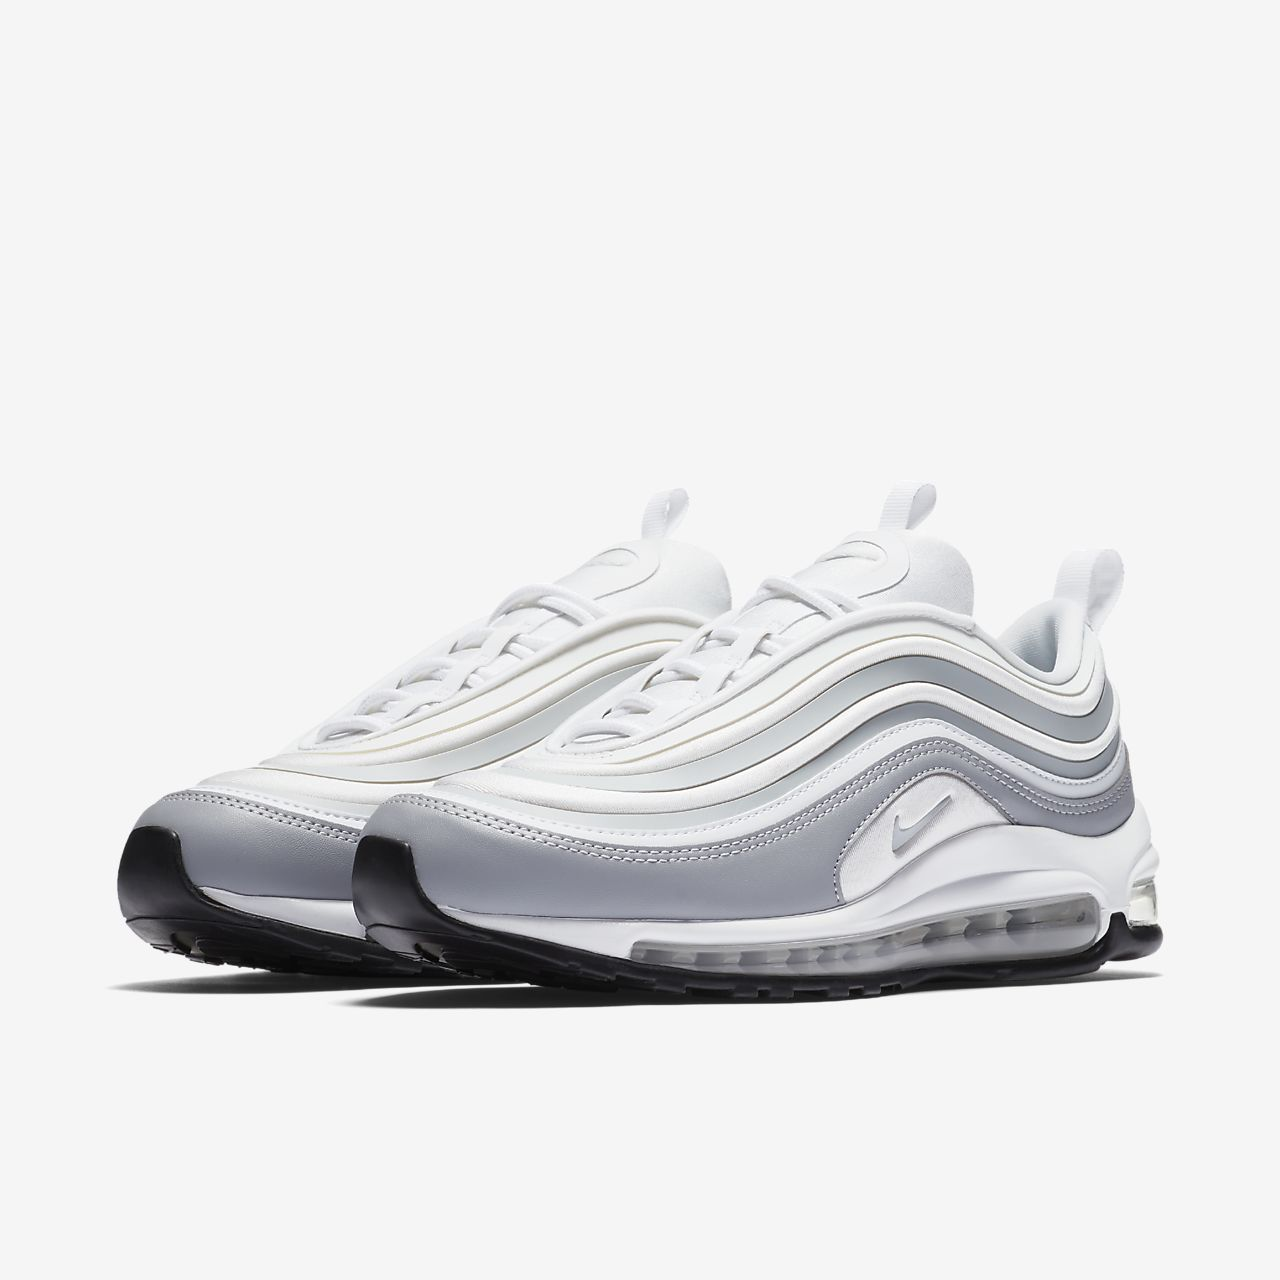 Cheap Nike Air Max 97 Ultra '17 LX Women's Shoe. Cheap Nike NO